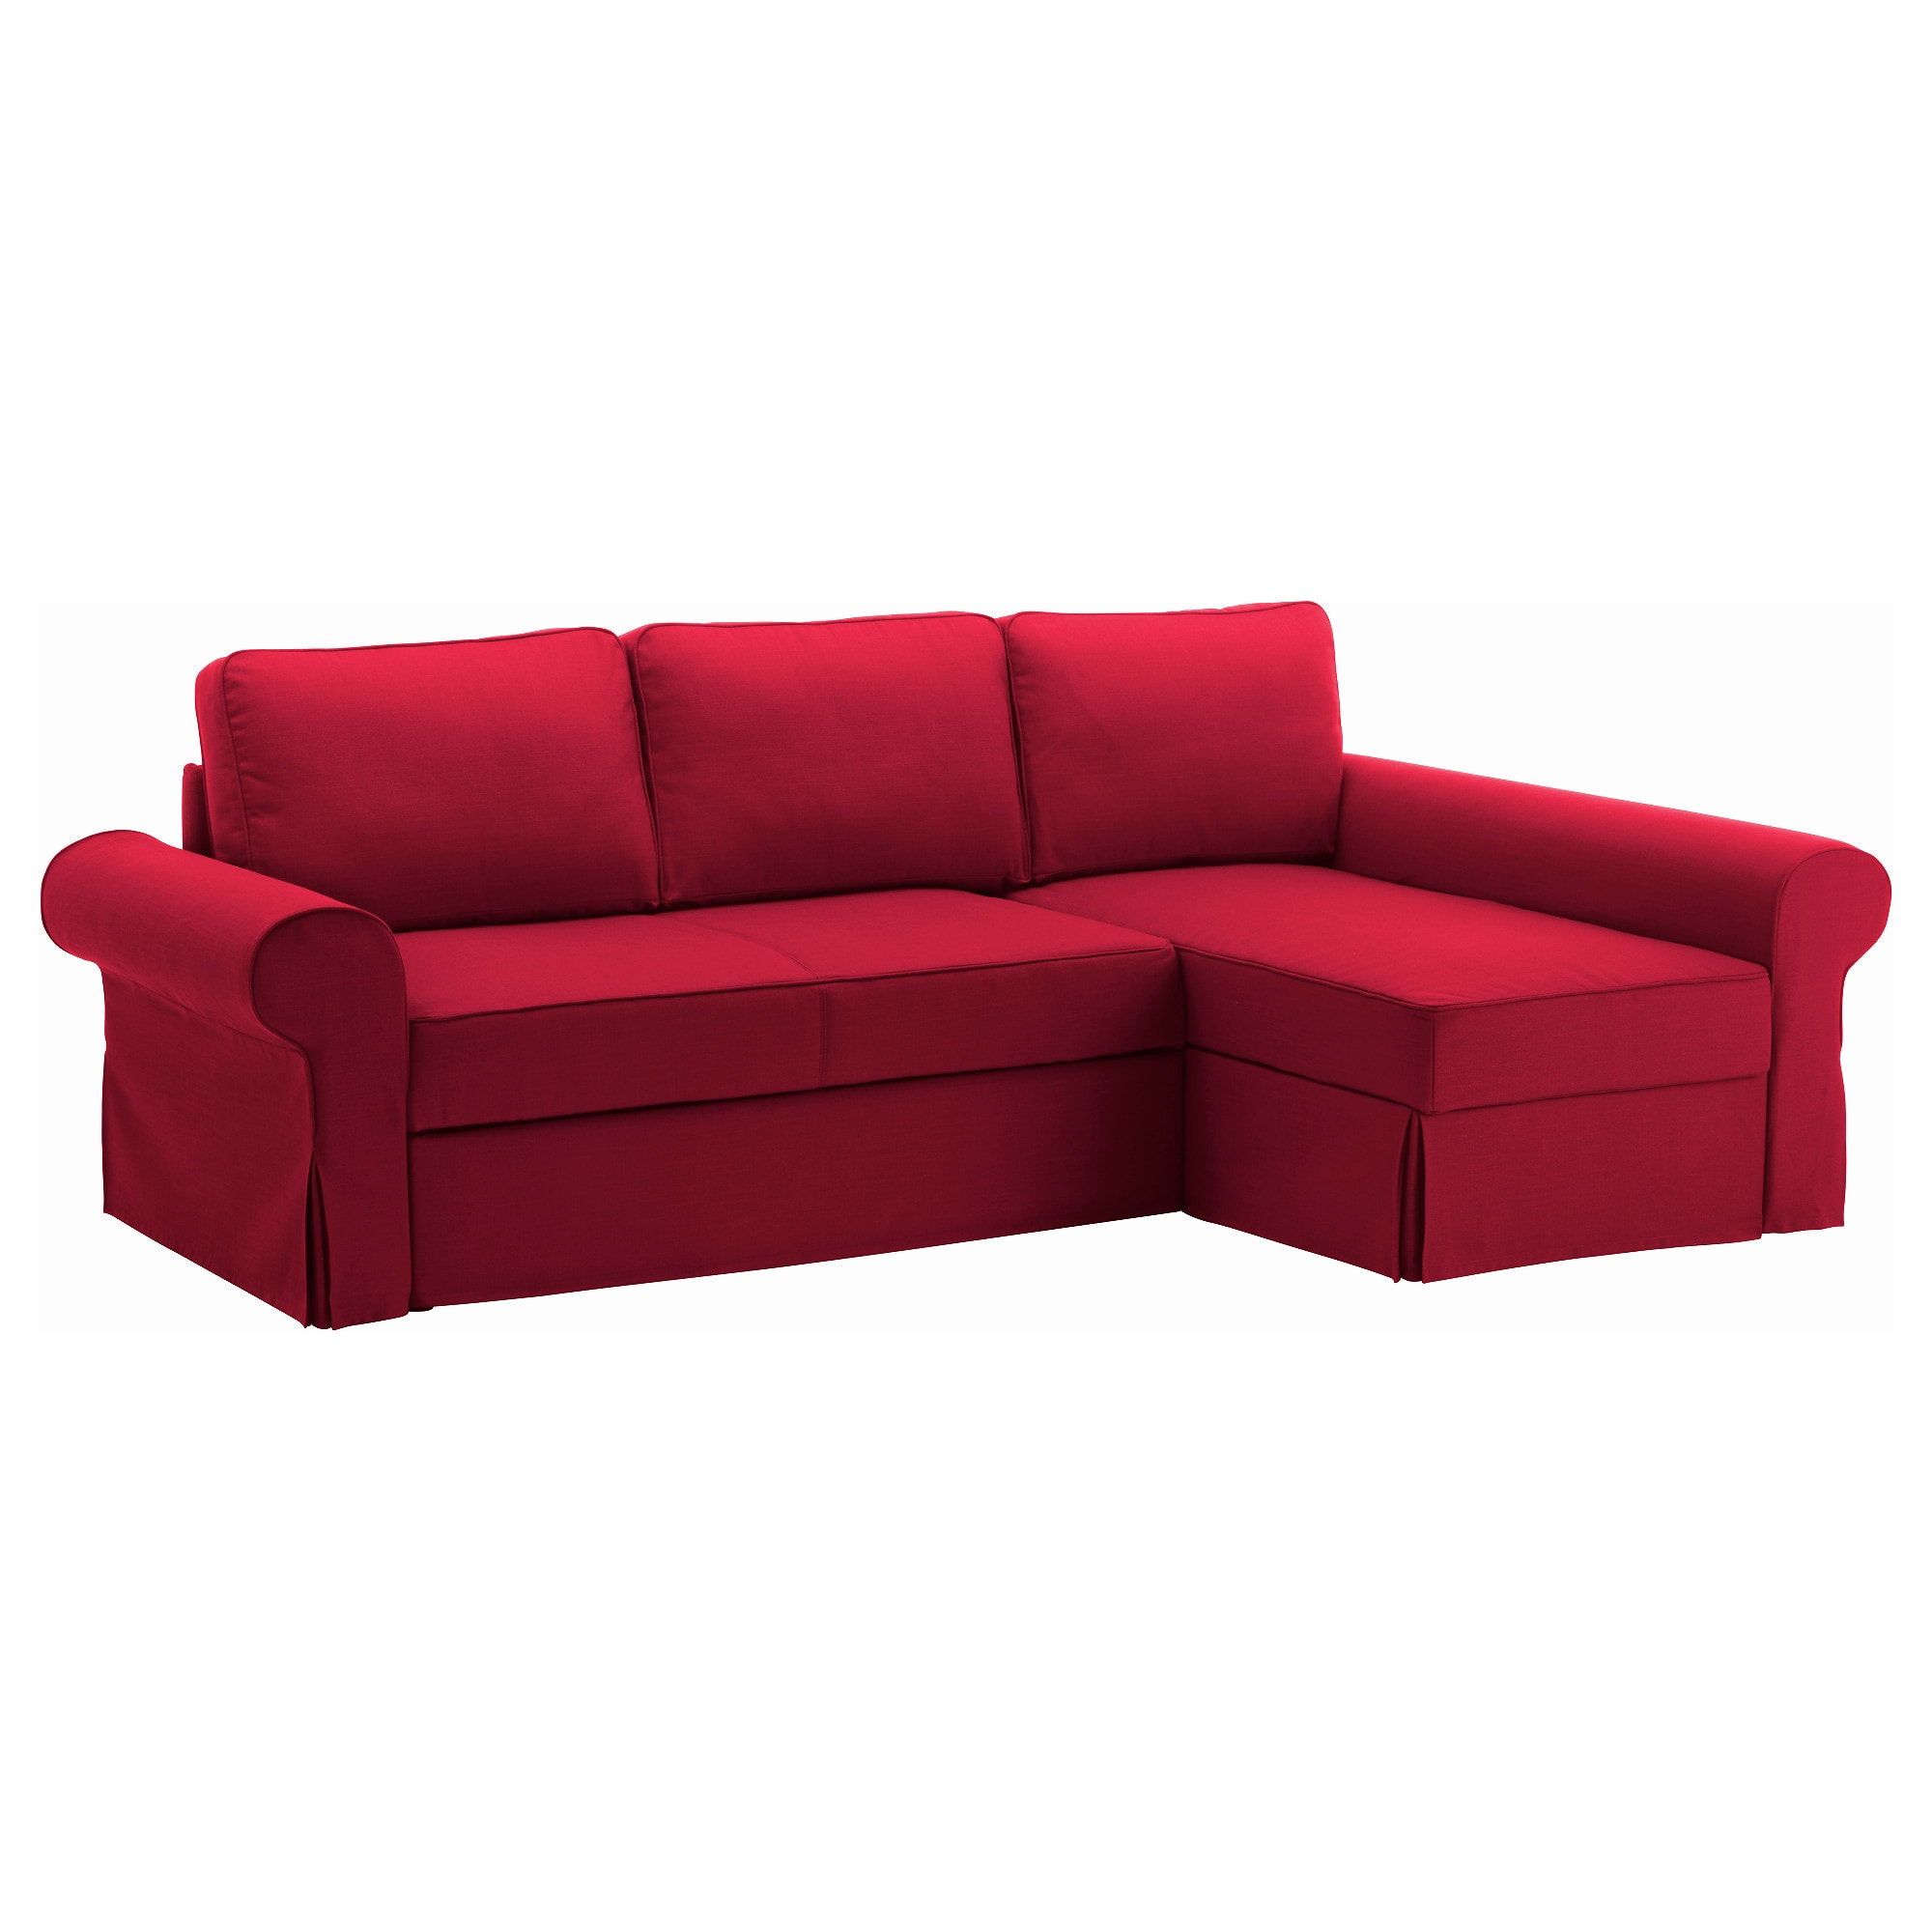 Ikea In Red Sofas And Chairs (Gallery 7 of 20)